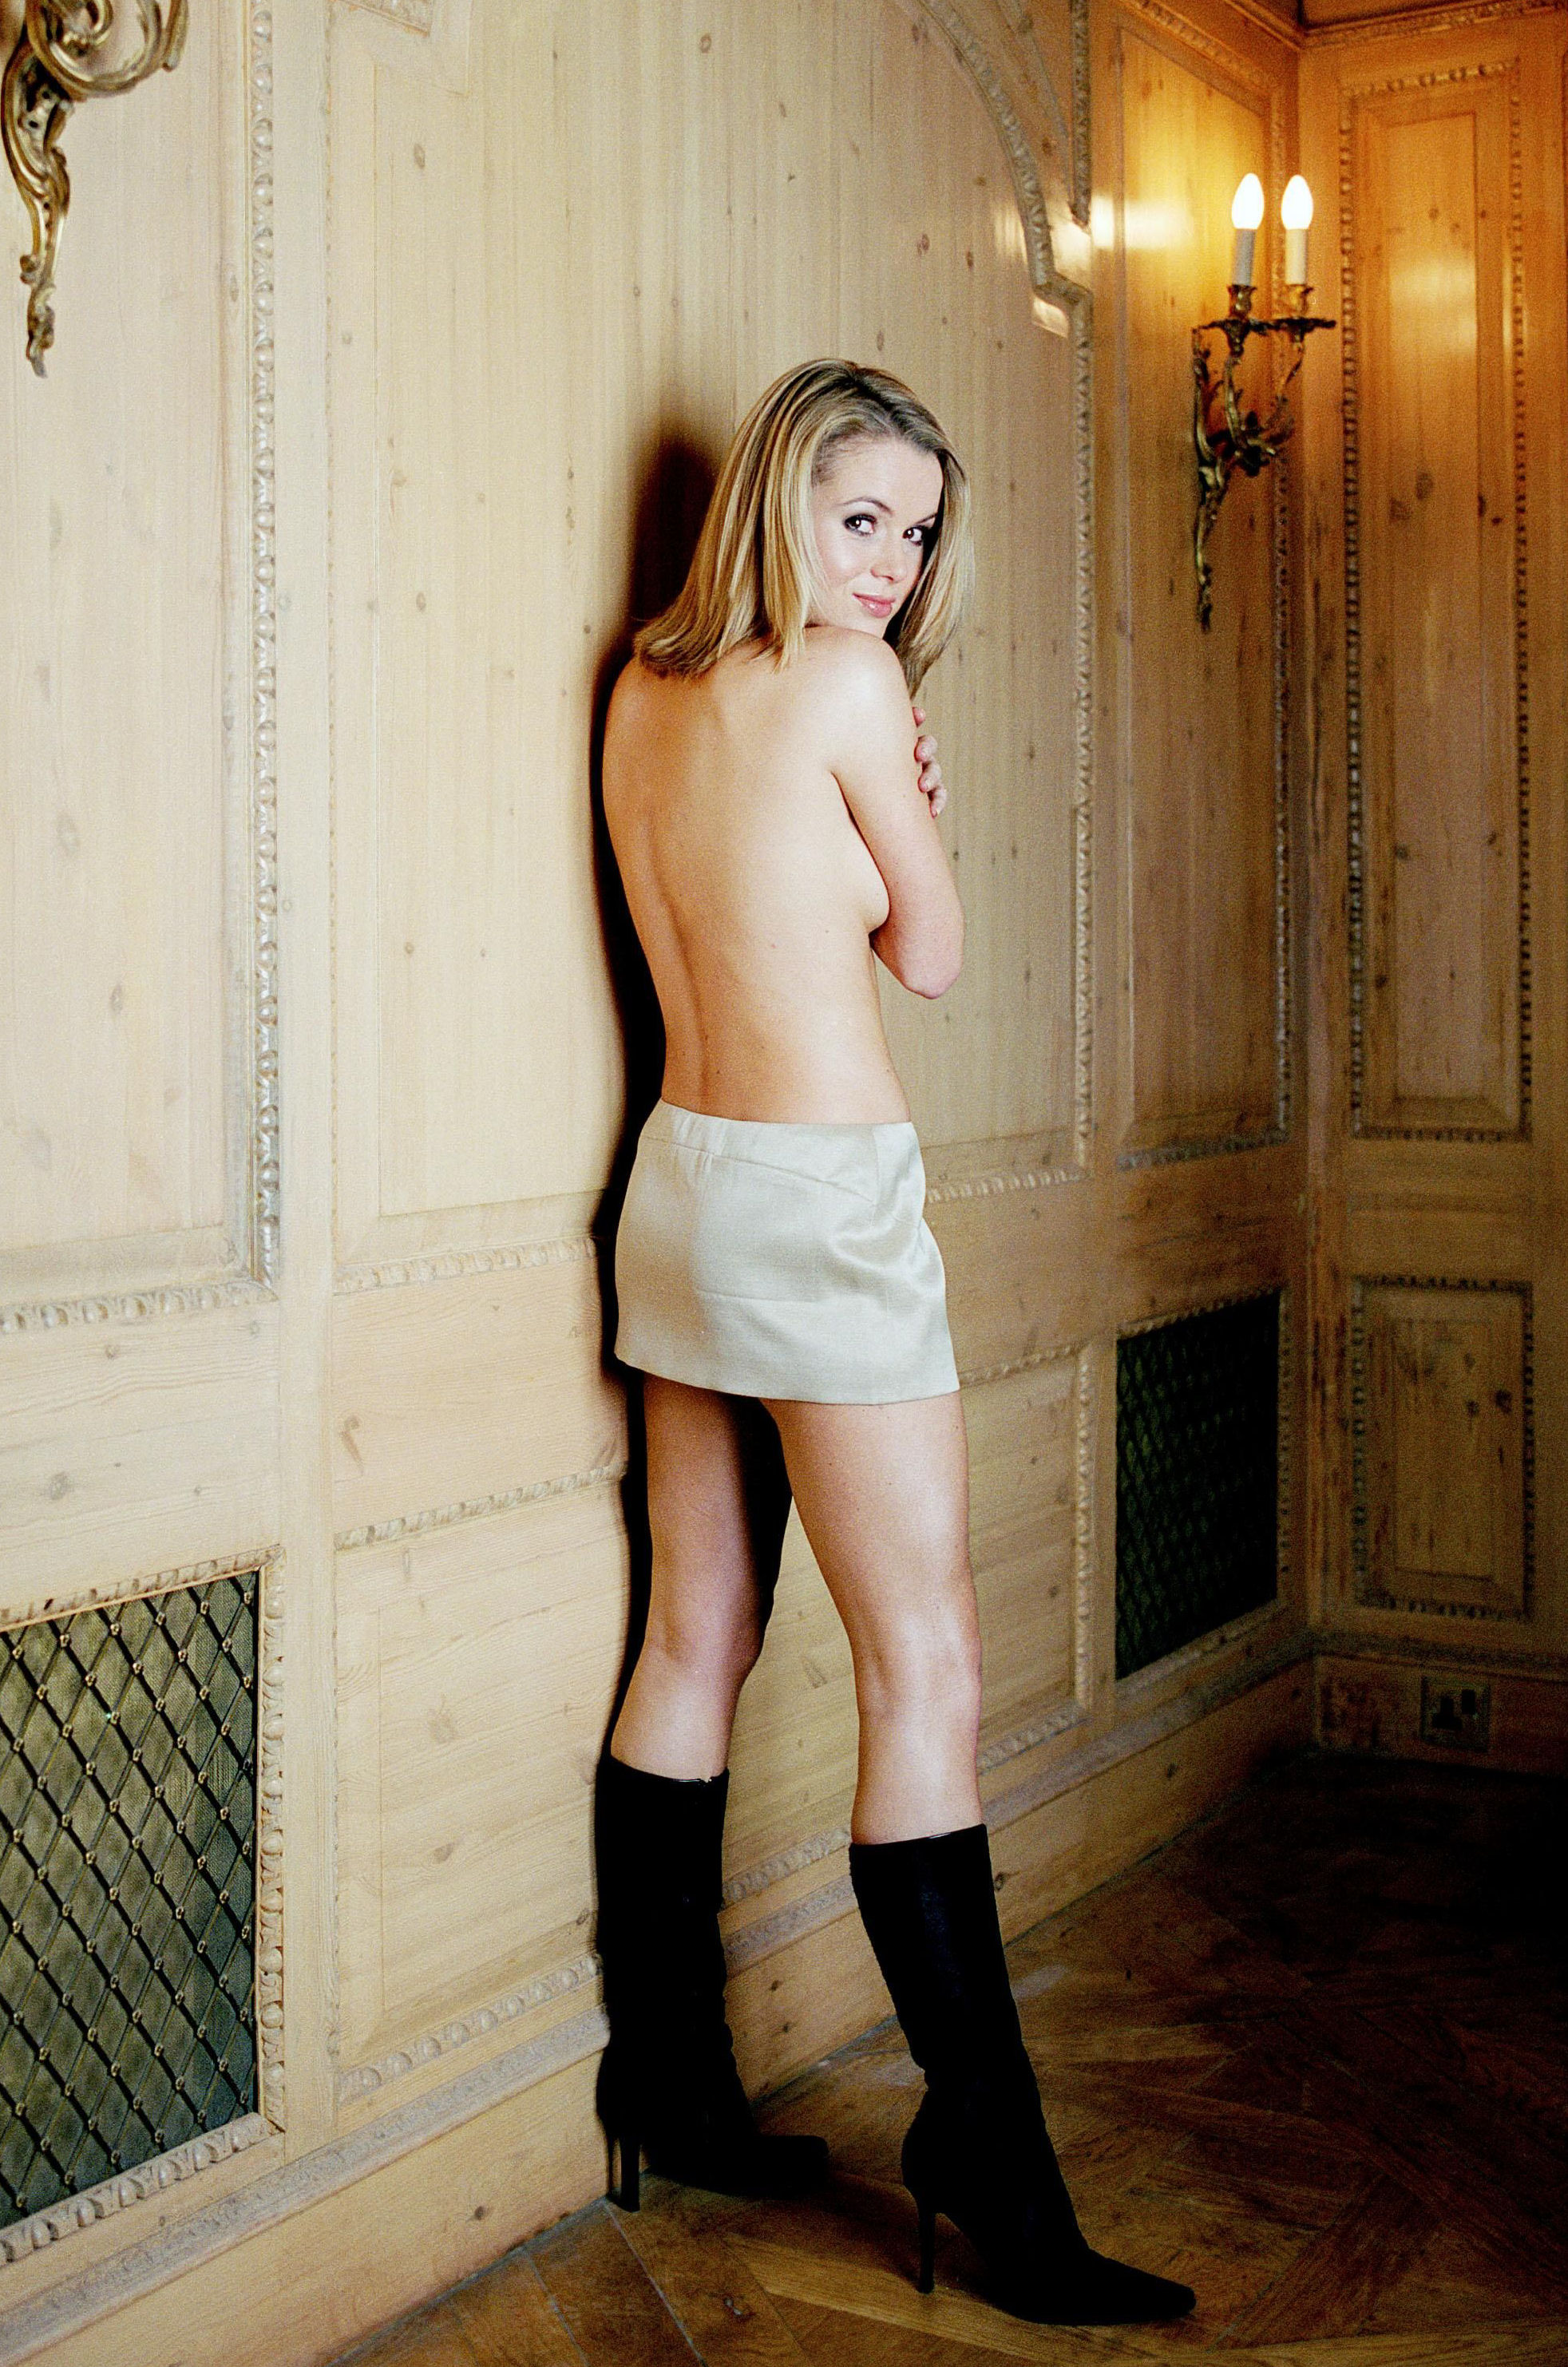 amanda-holden-nude-pictures